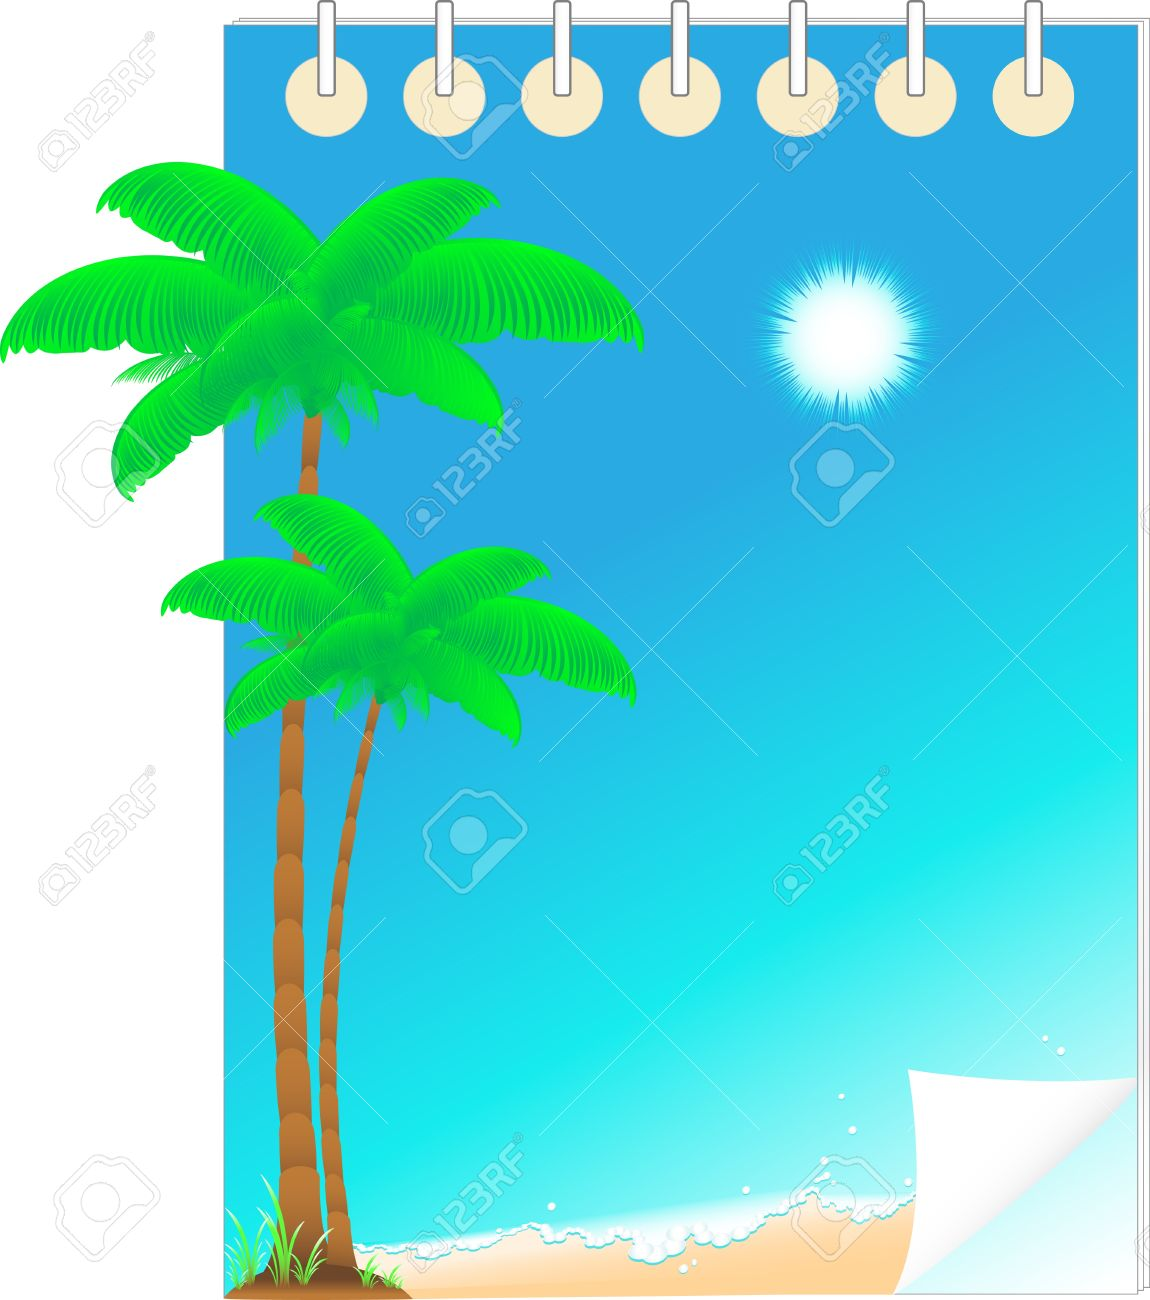 Lagoon clipart #4, Download drawings